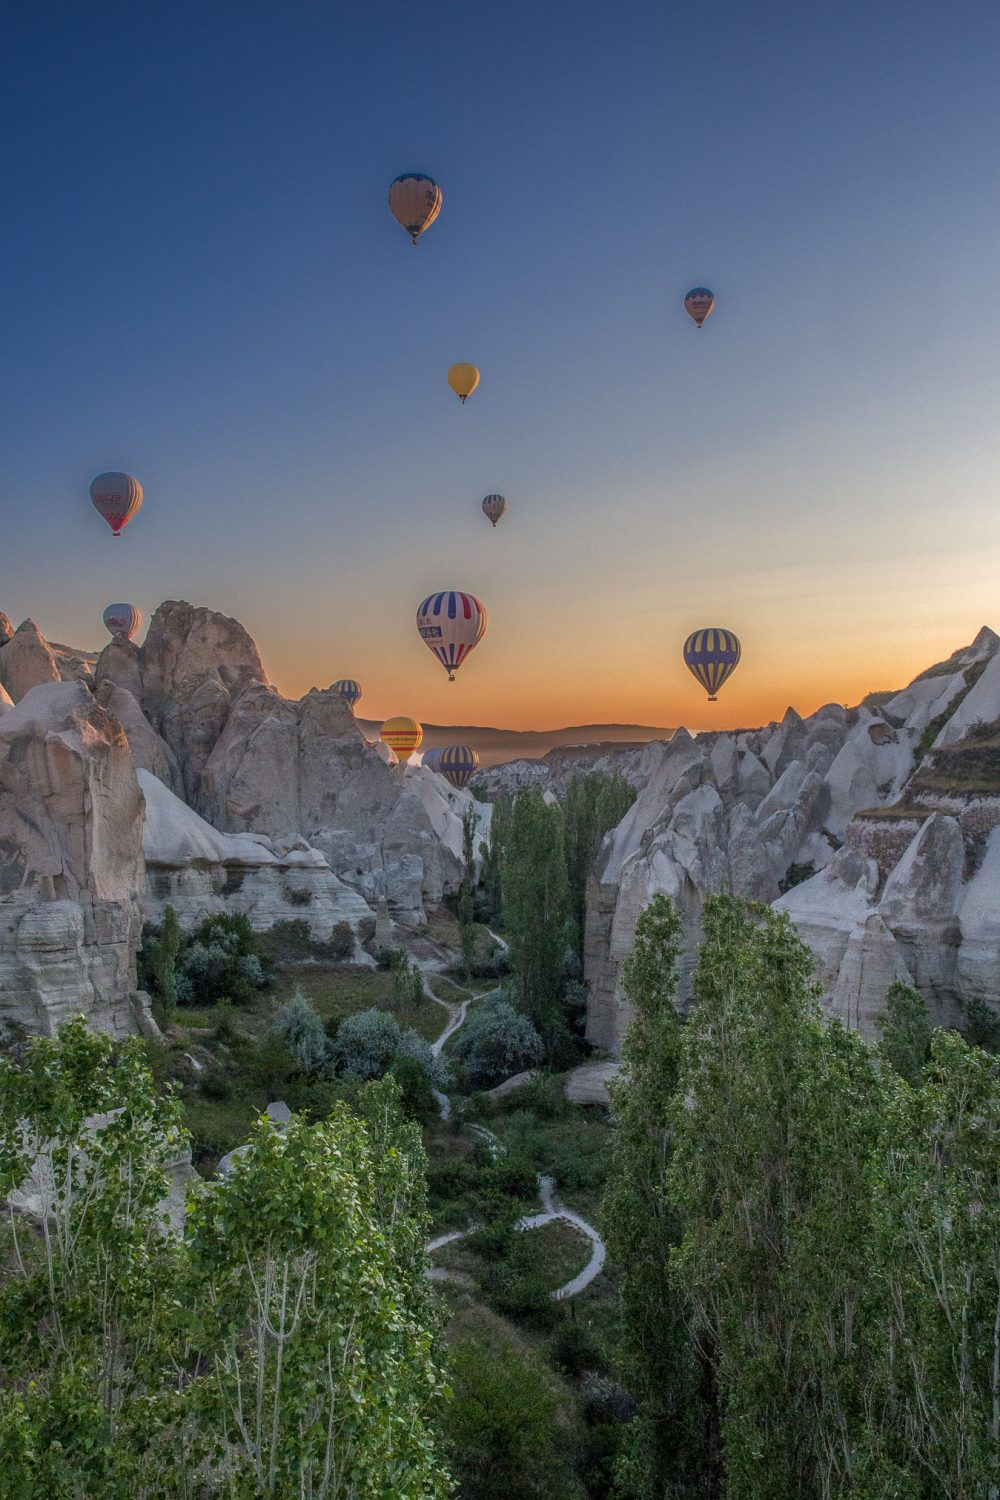 Cappadocia Cruising the Canyon